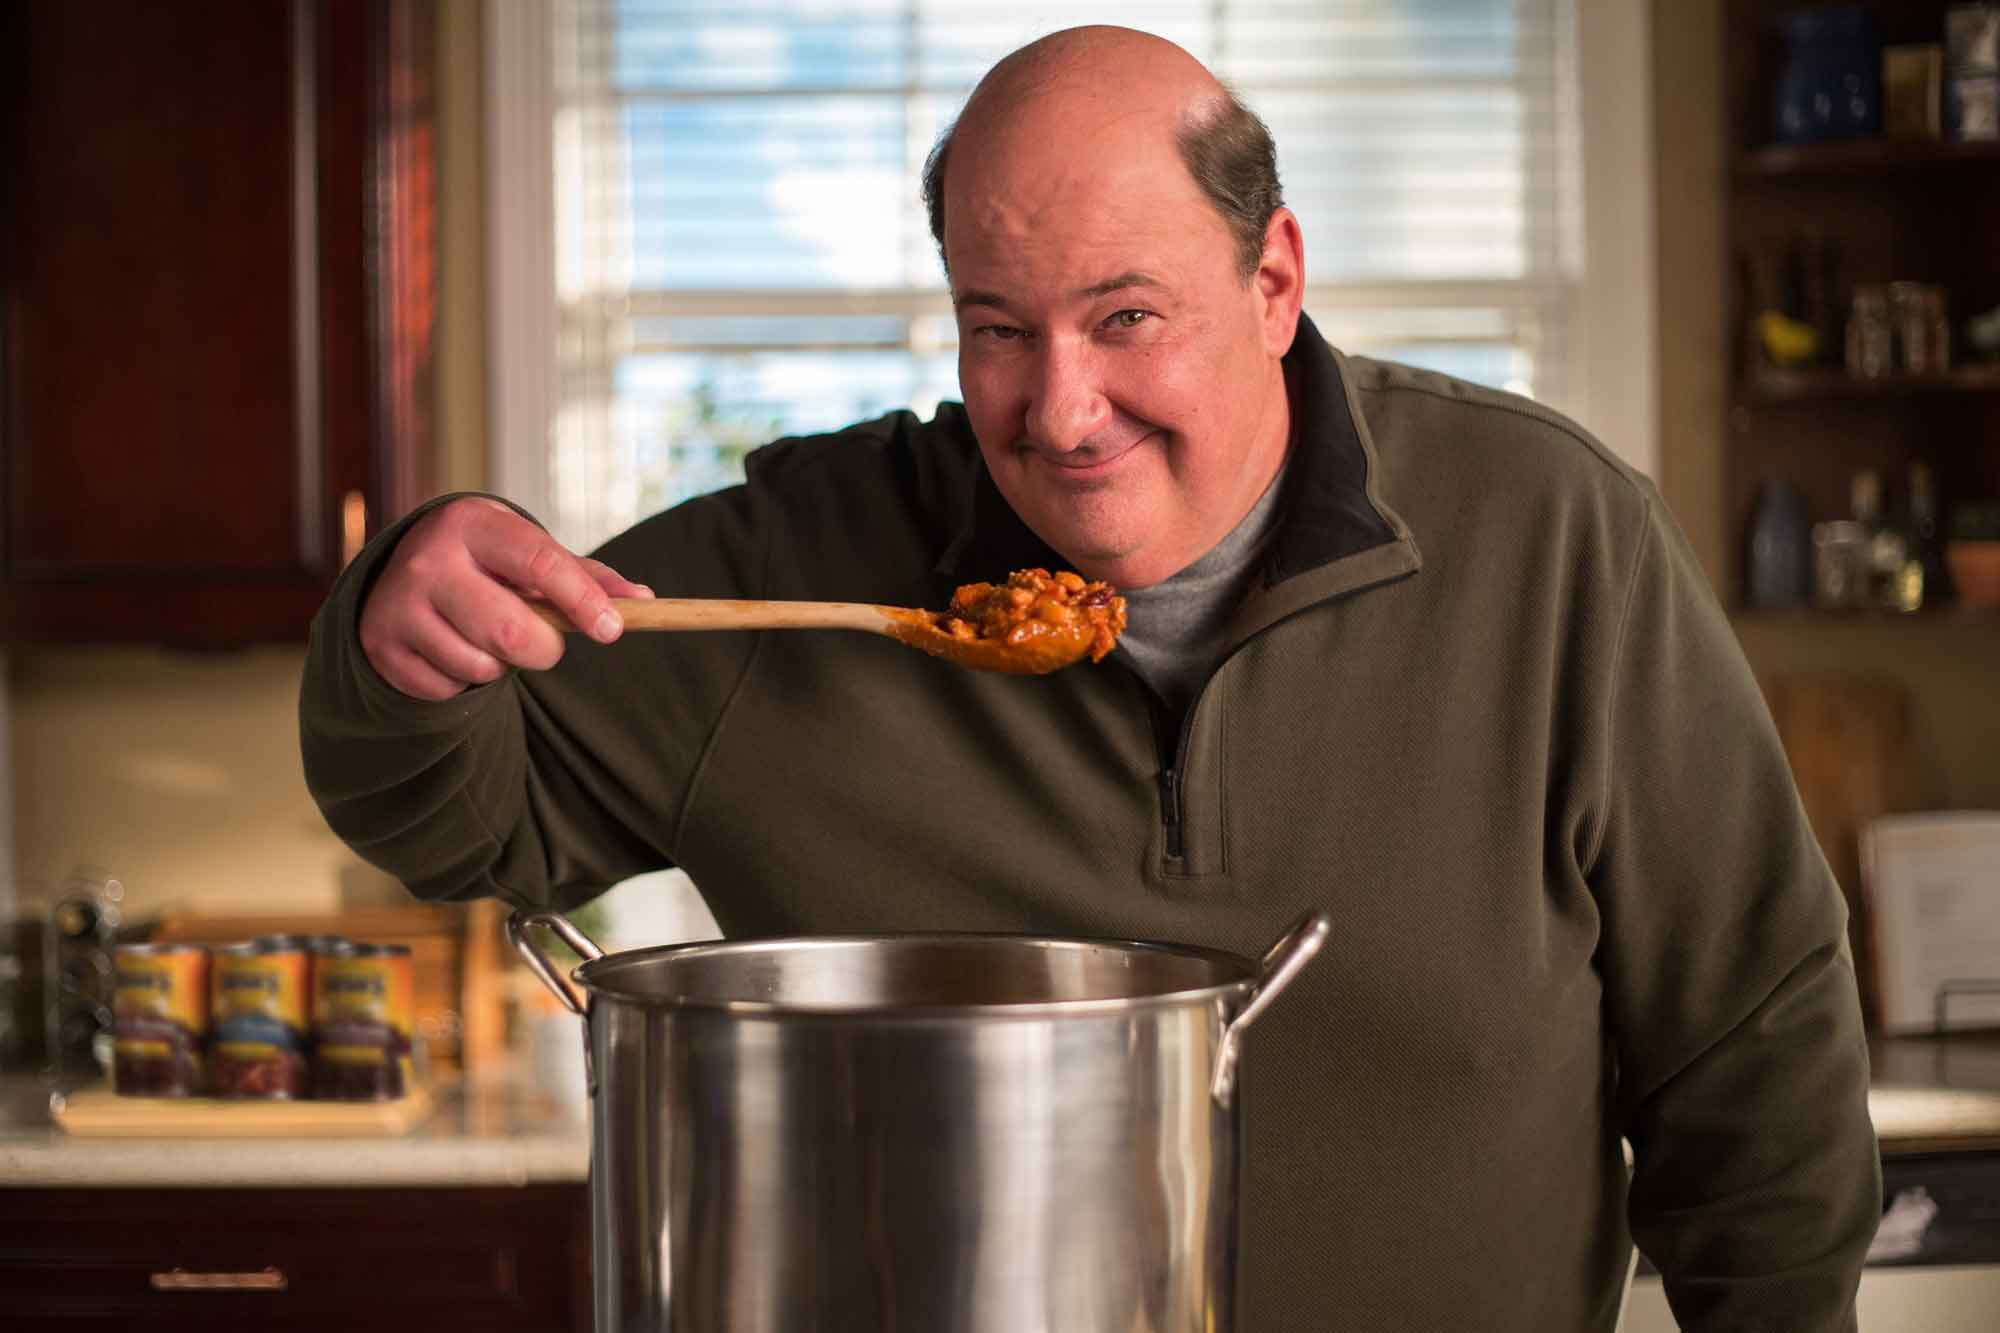 Bush's Beans hires Kevin from 'The Office' to make his famous chili